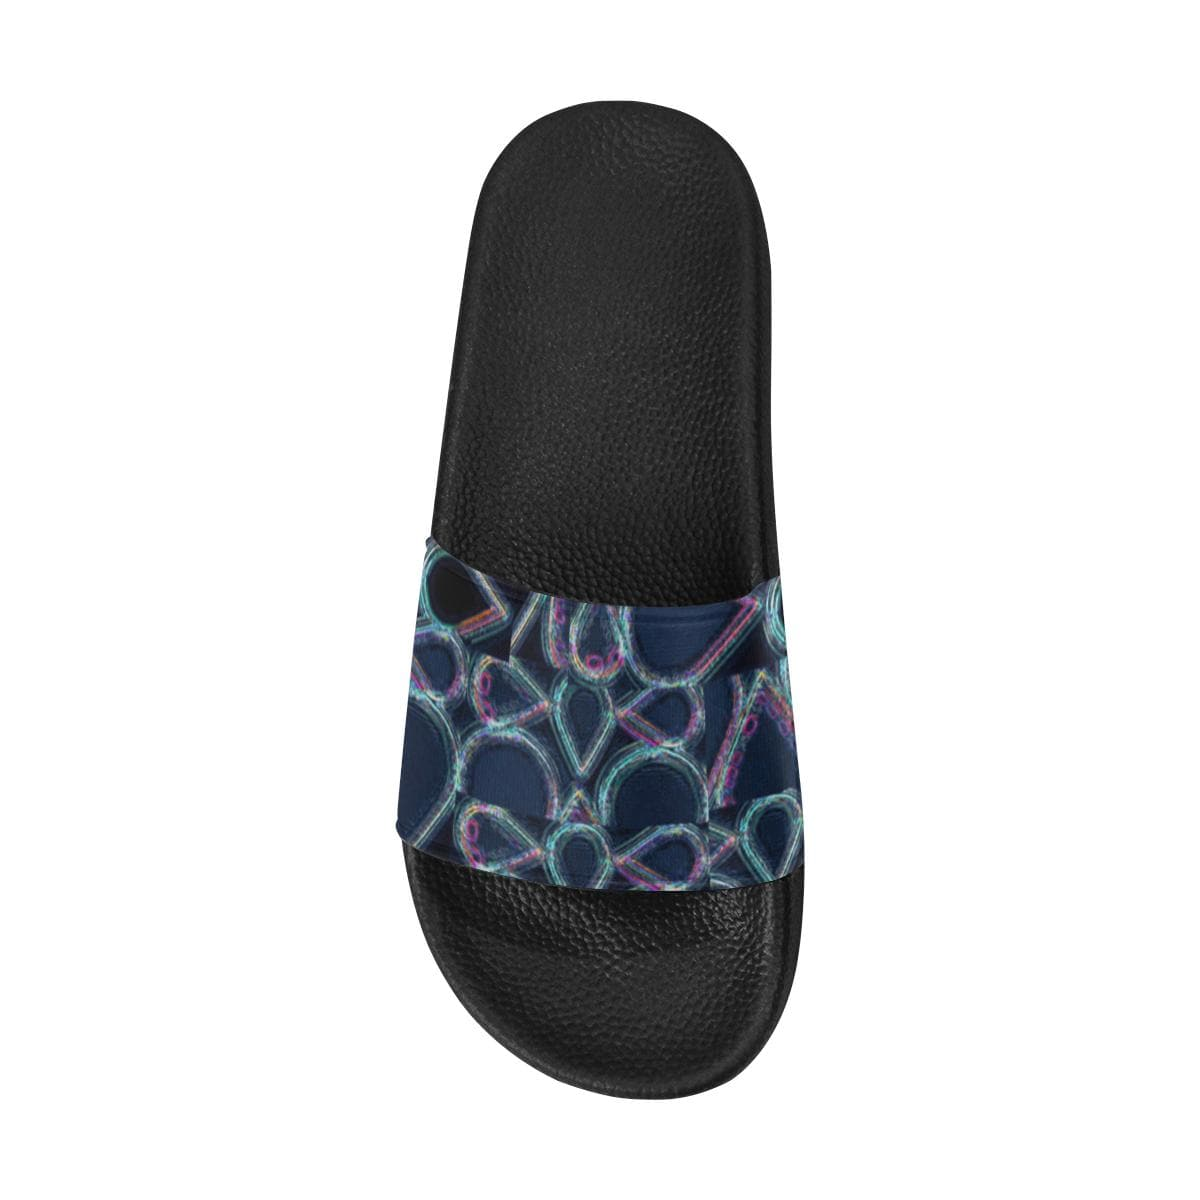 Pure Hydro Women's Slide Sandals - Tie-Fly